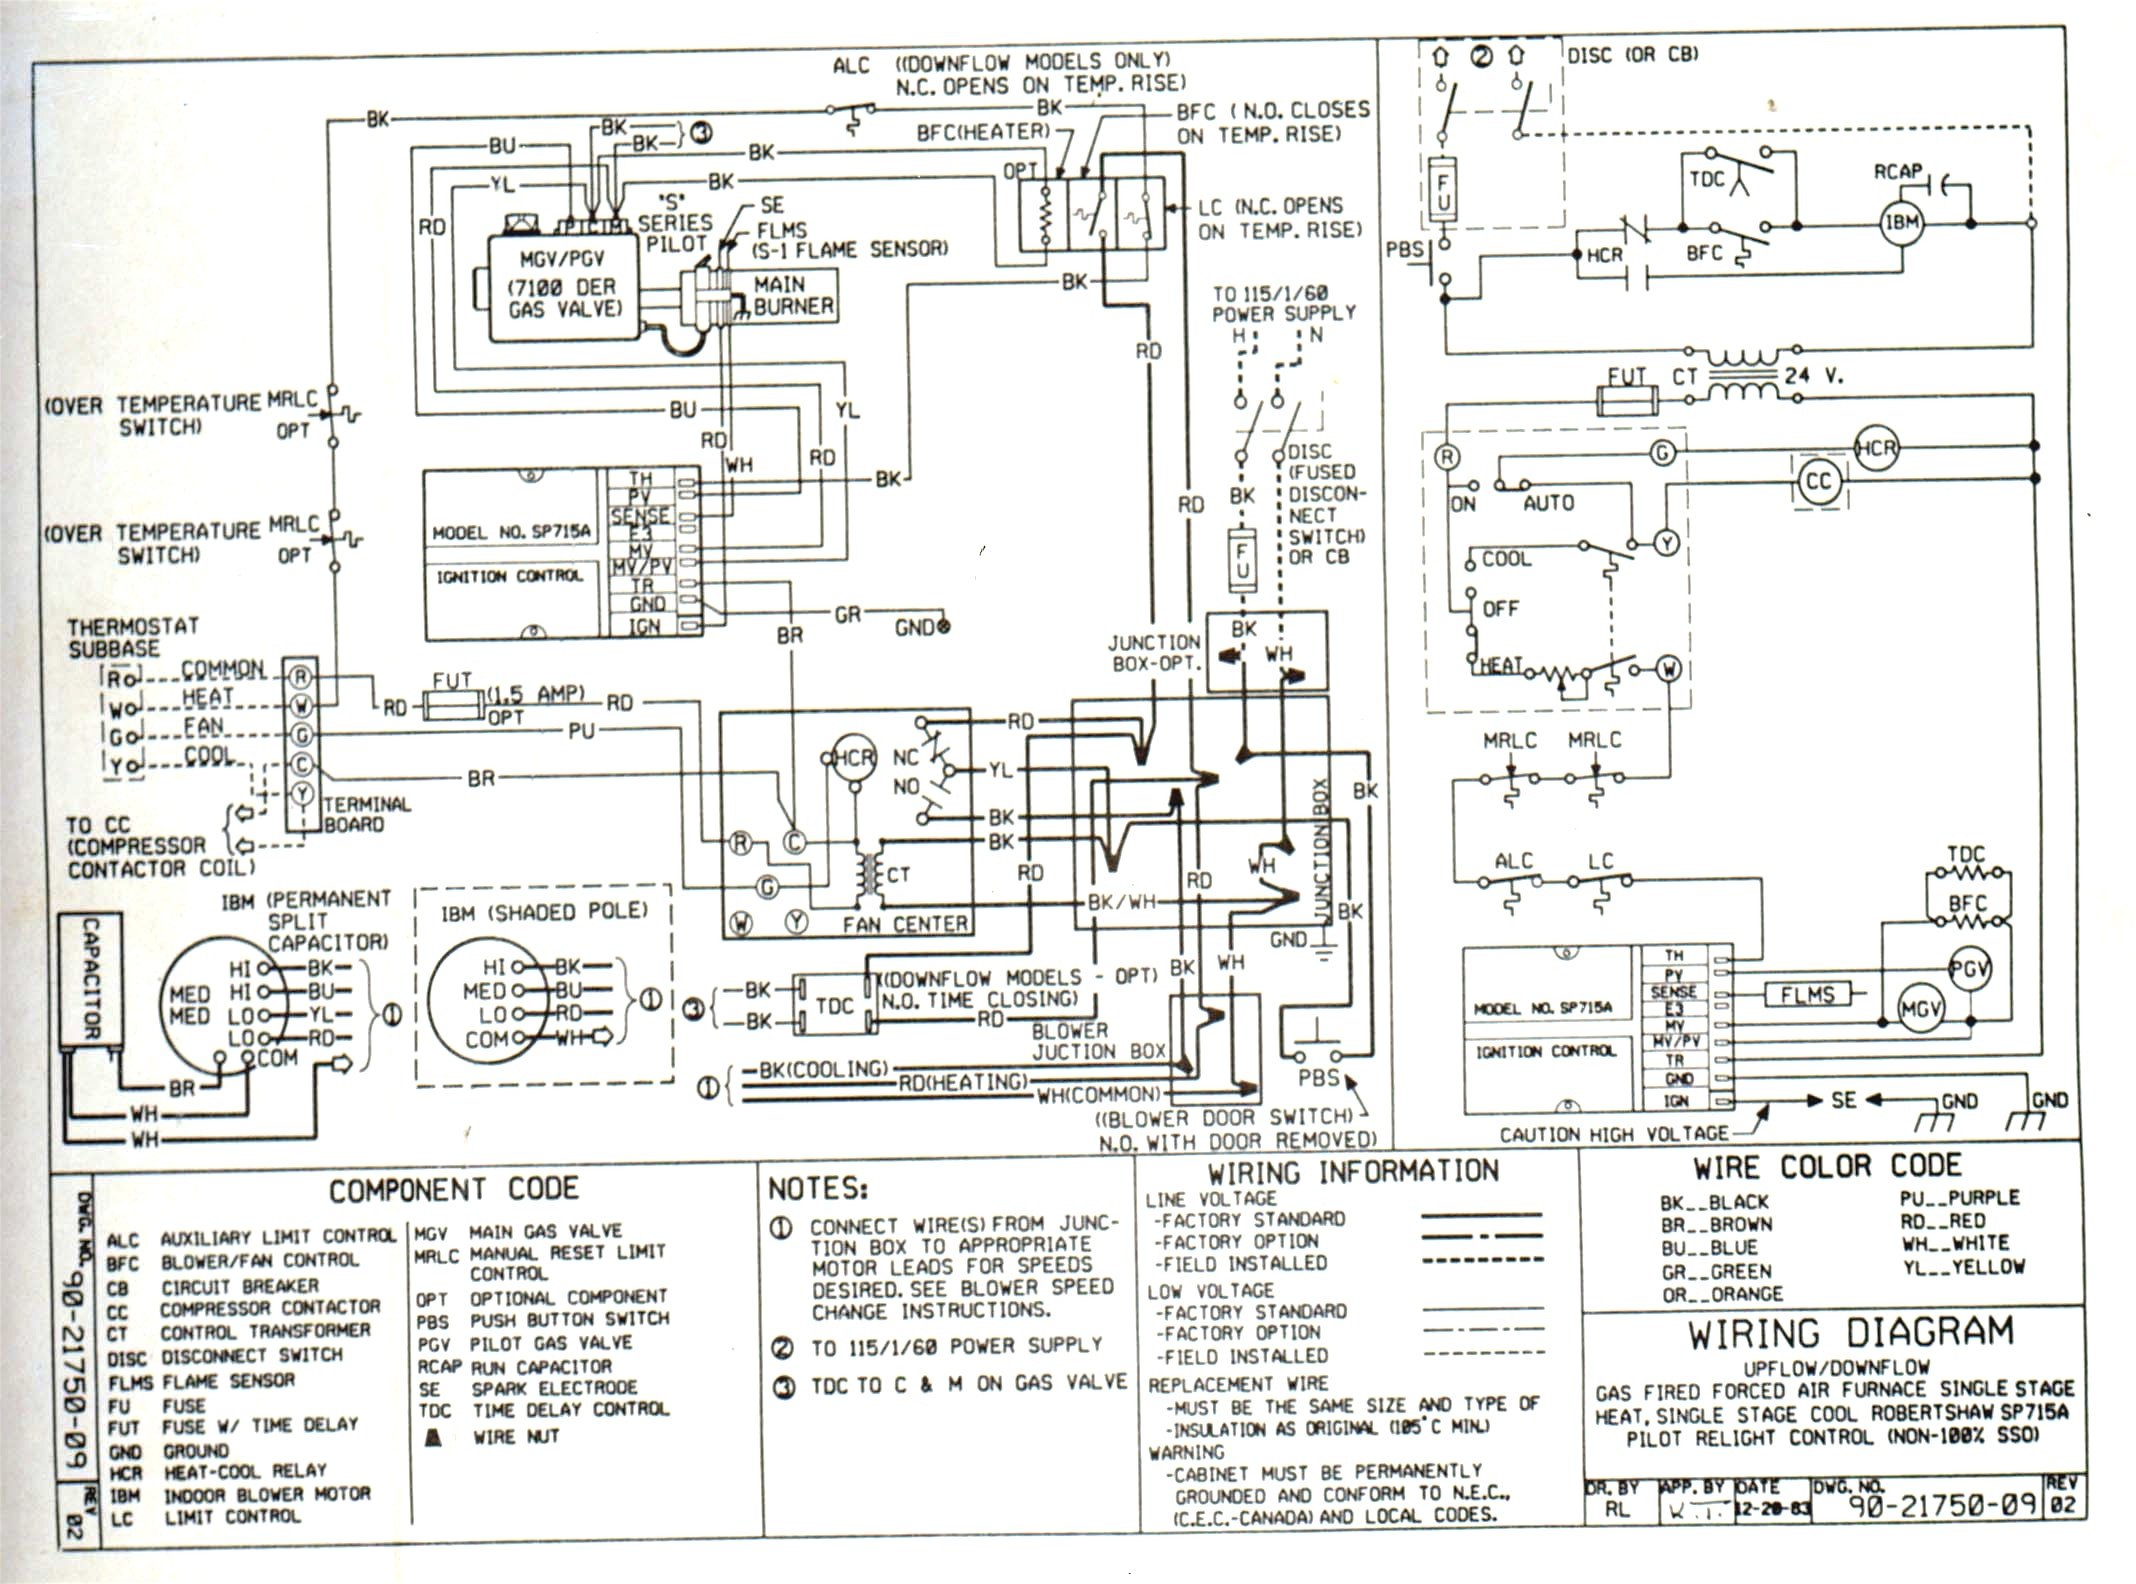 DIAGRAM] Wiring Diagram For Rheem Heat Pump FULL Version HD Quality Heat  Pump - 05020025FUSE9079.HOTELBISCETTI.IThotelbiscetti.it